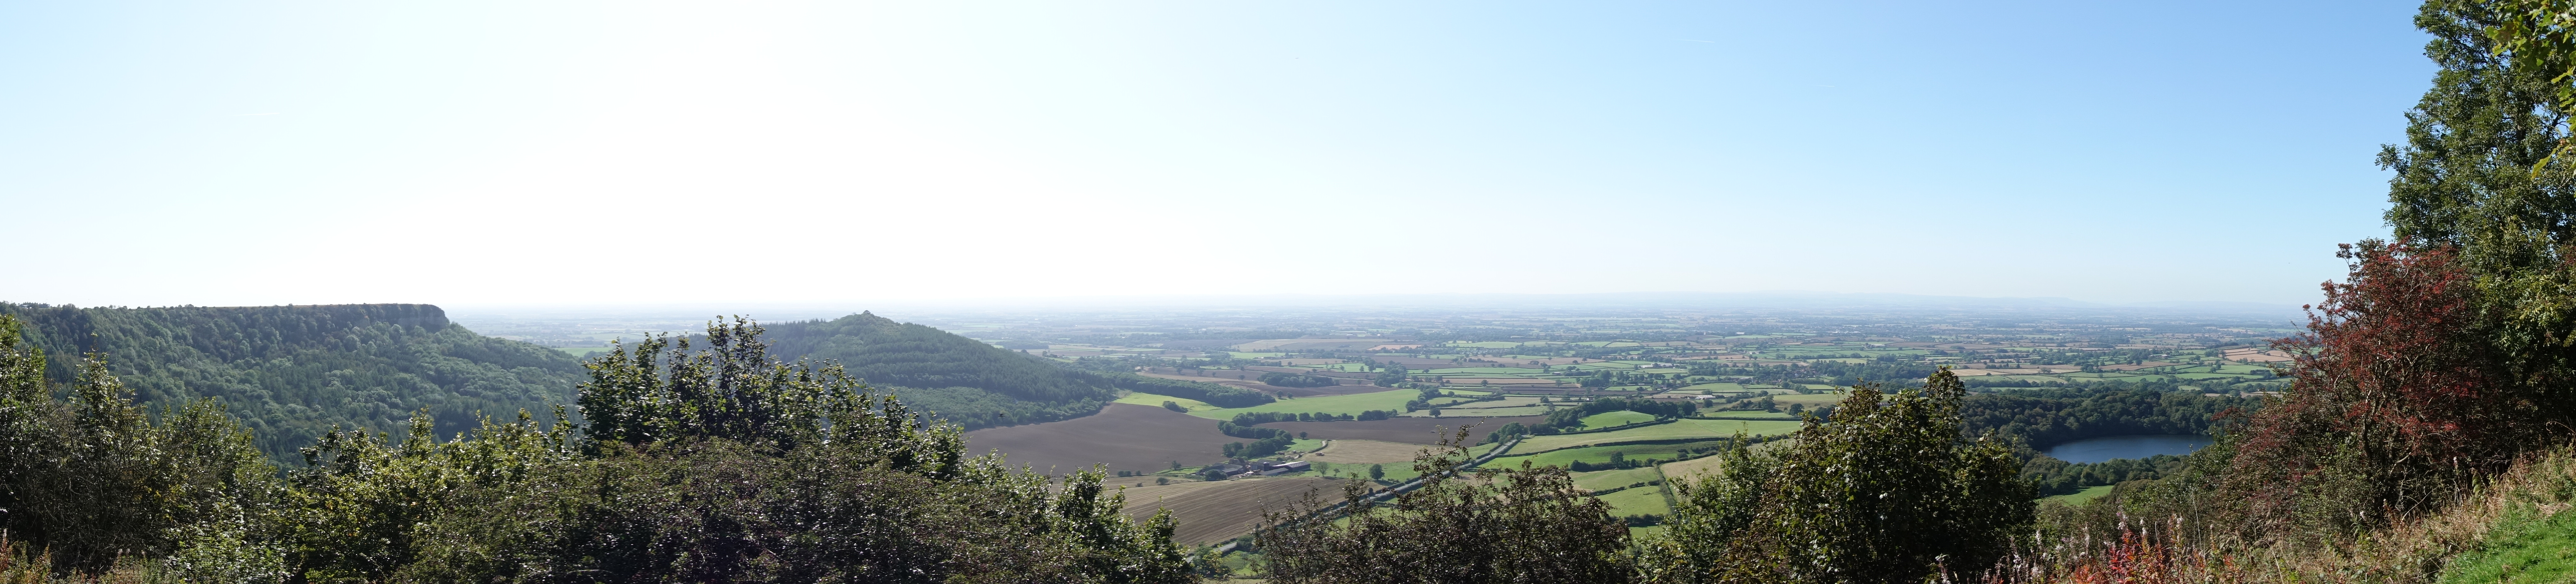 James Herriot proclaimed that standing on Sutton Bank offered the 'Finest View in England'